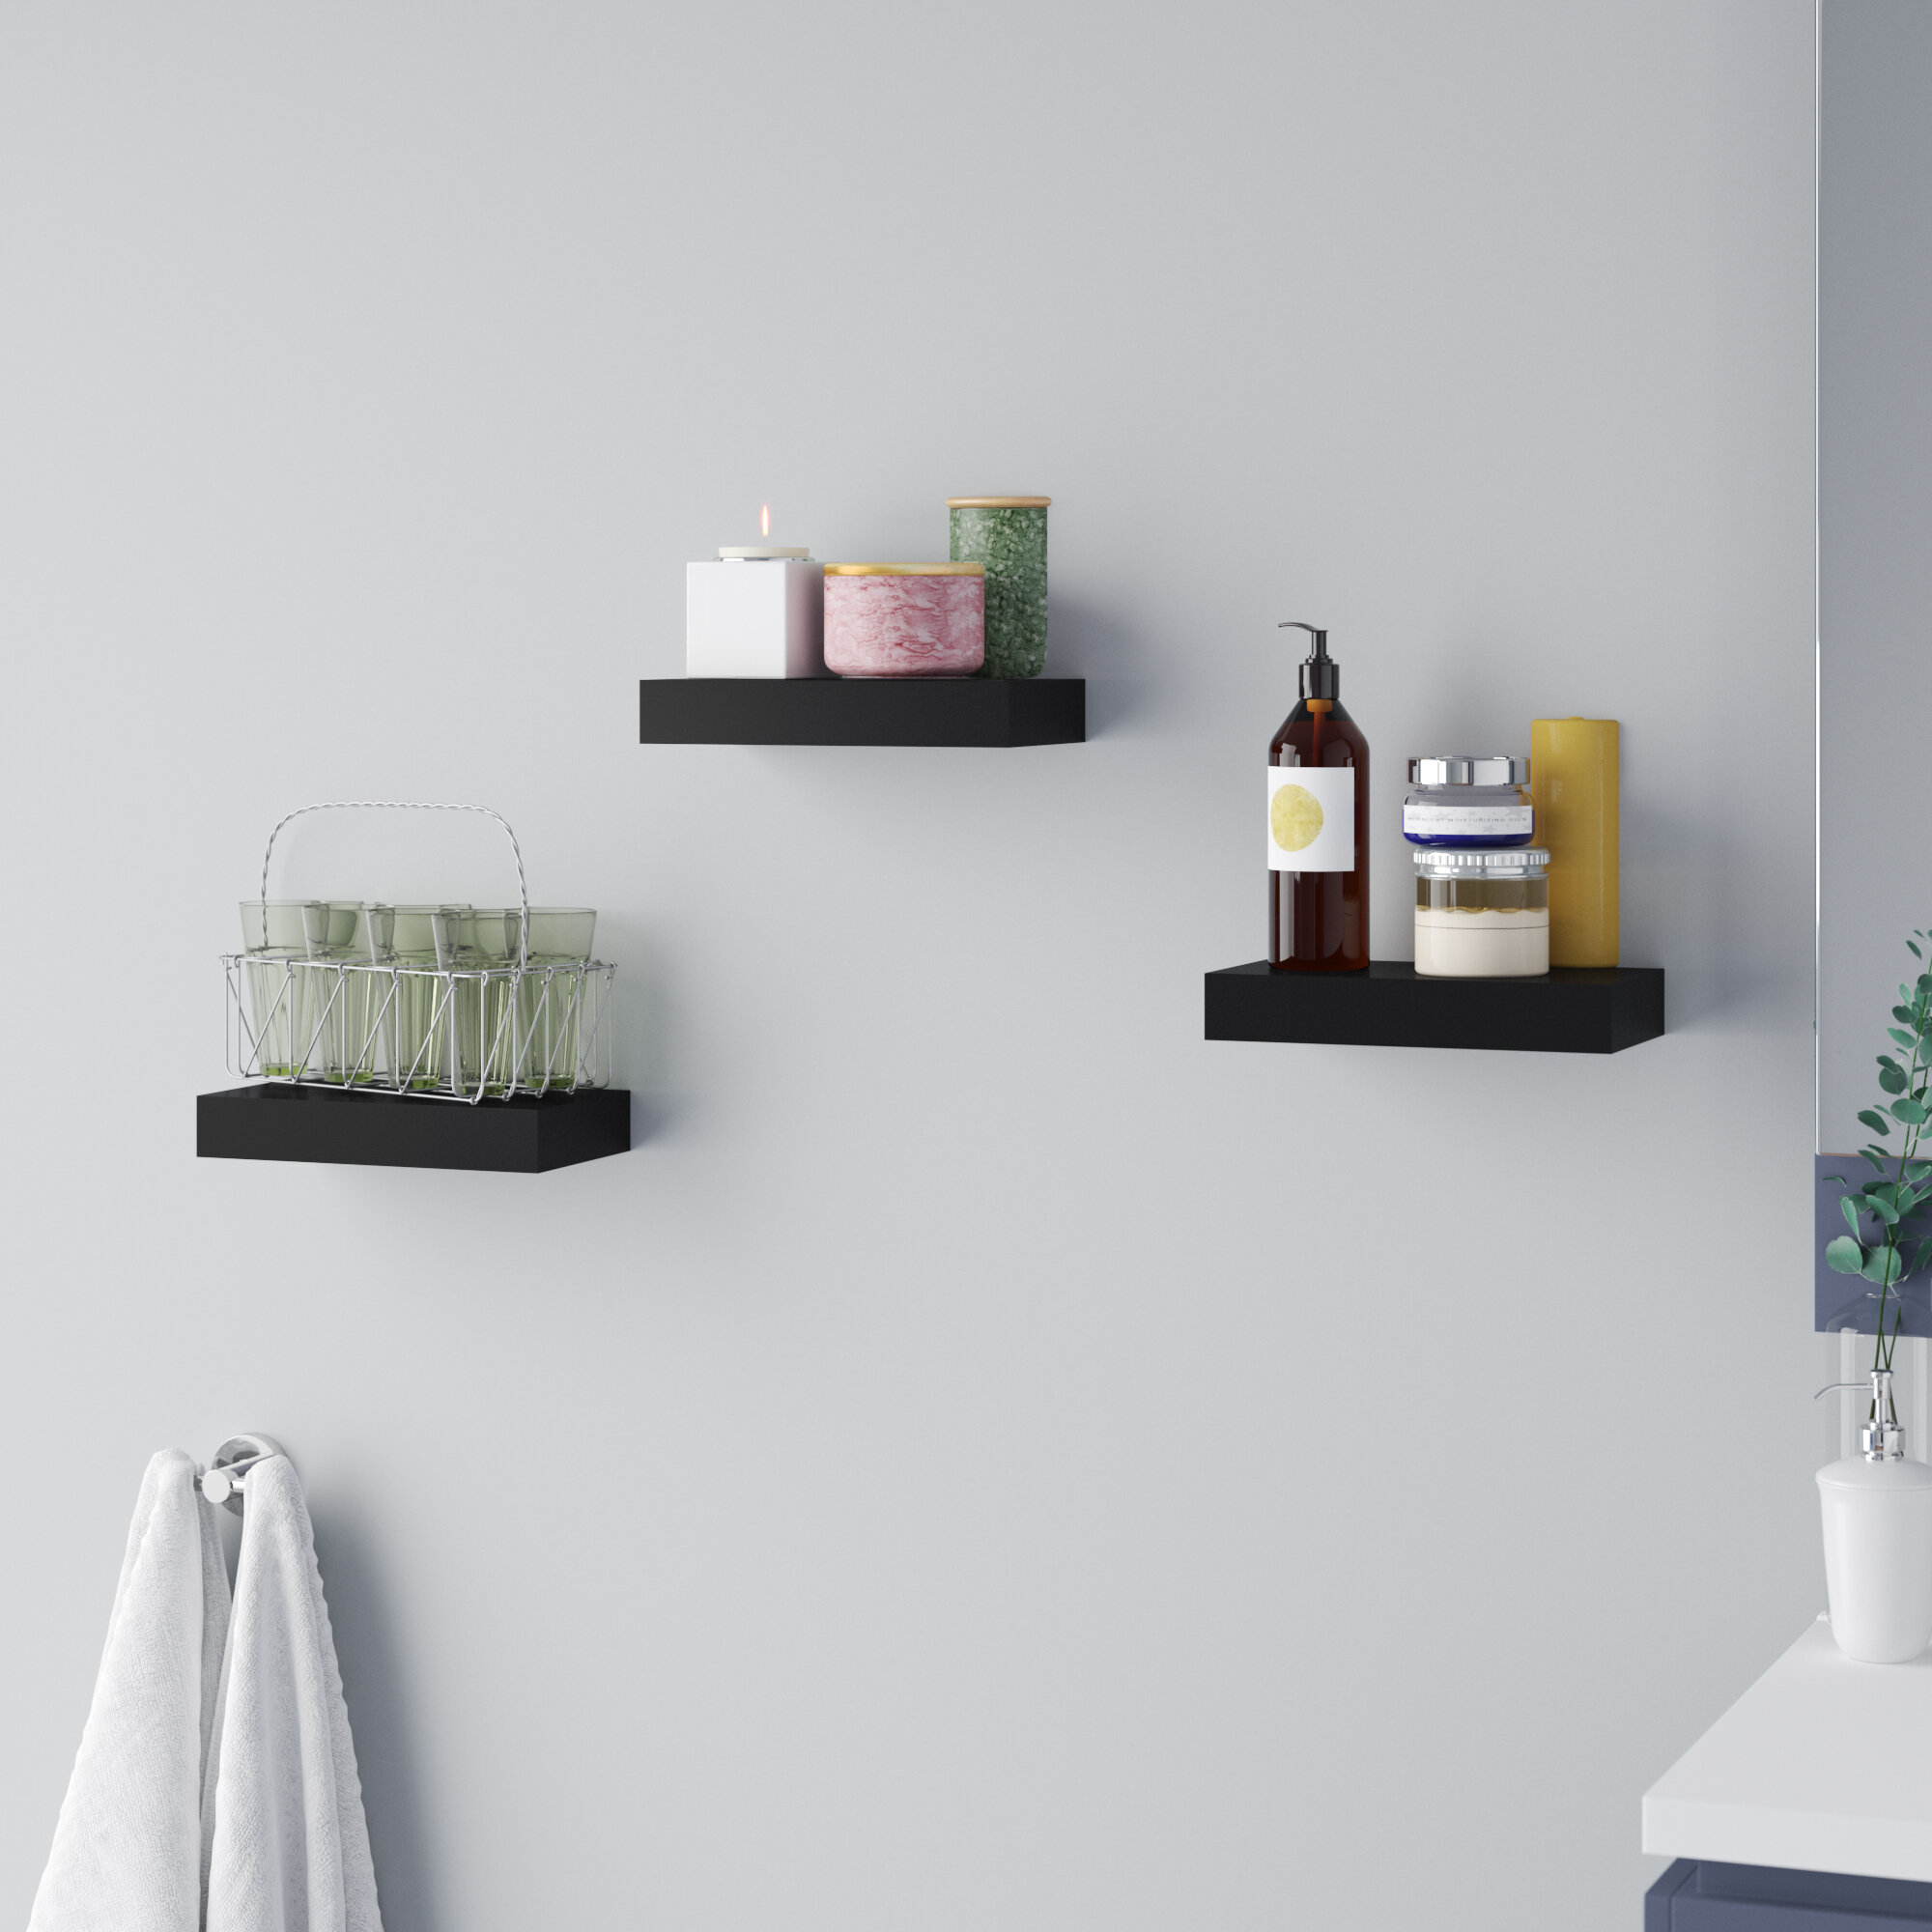 latitude run hitchens tile floating shelf reviews melannco shelves grey ematic set top box homemade kitchen glass corner unit mantel floor shoe holder shelving organizer rack